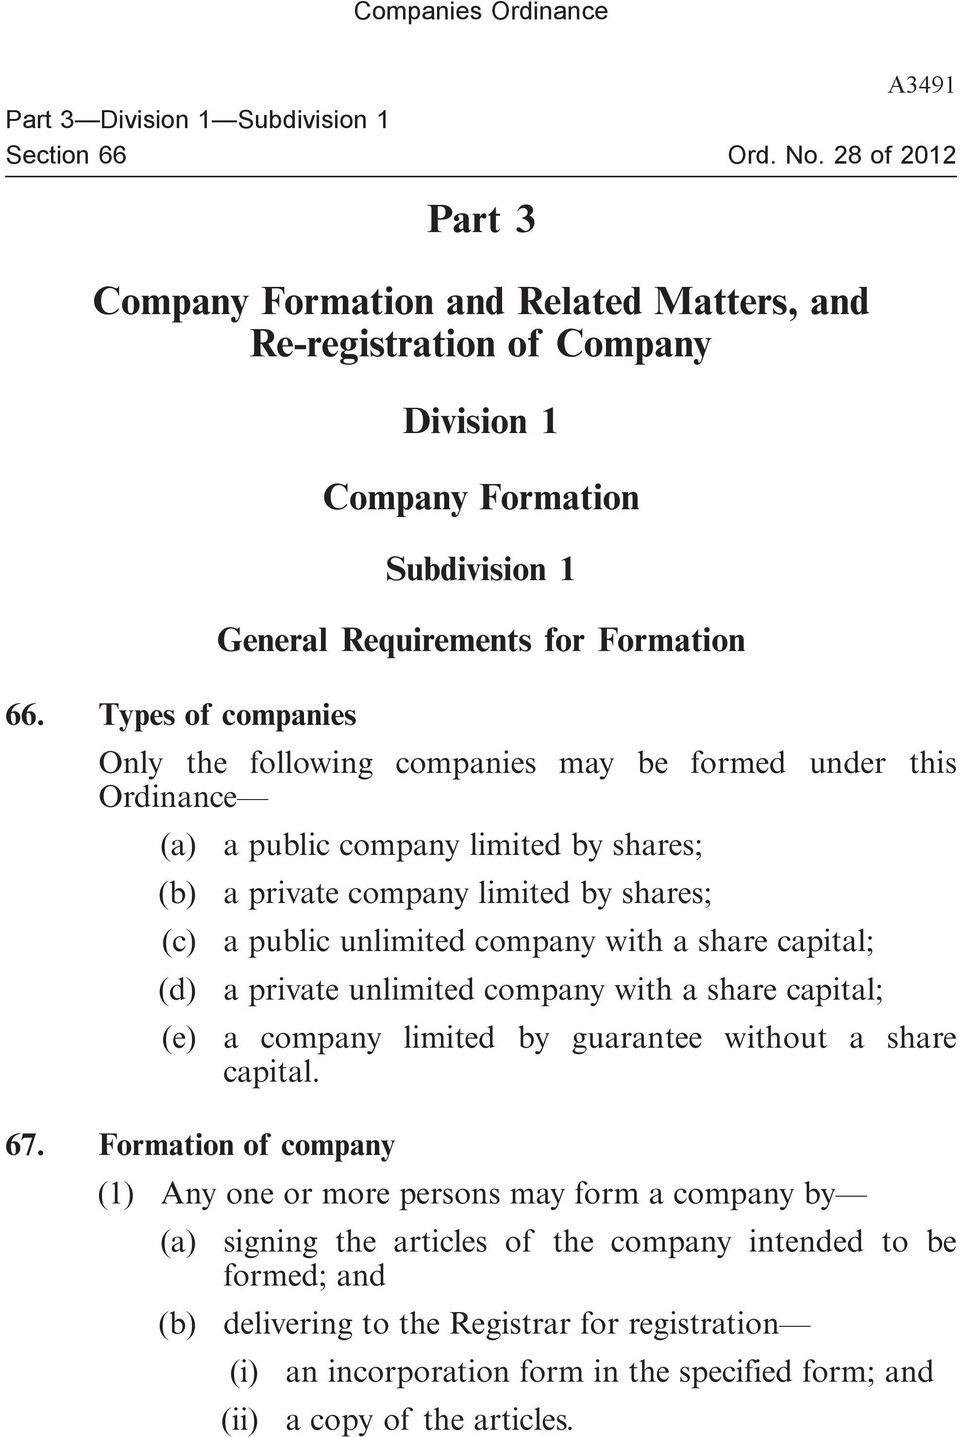 Types of companies Only the following companies may be formed under this Ordinance (a) a public company limited by shares; (b) a private company limited by shares; (c) a public unlimited company with